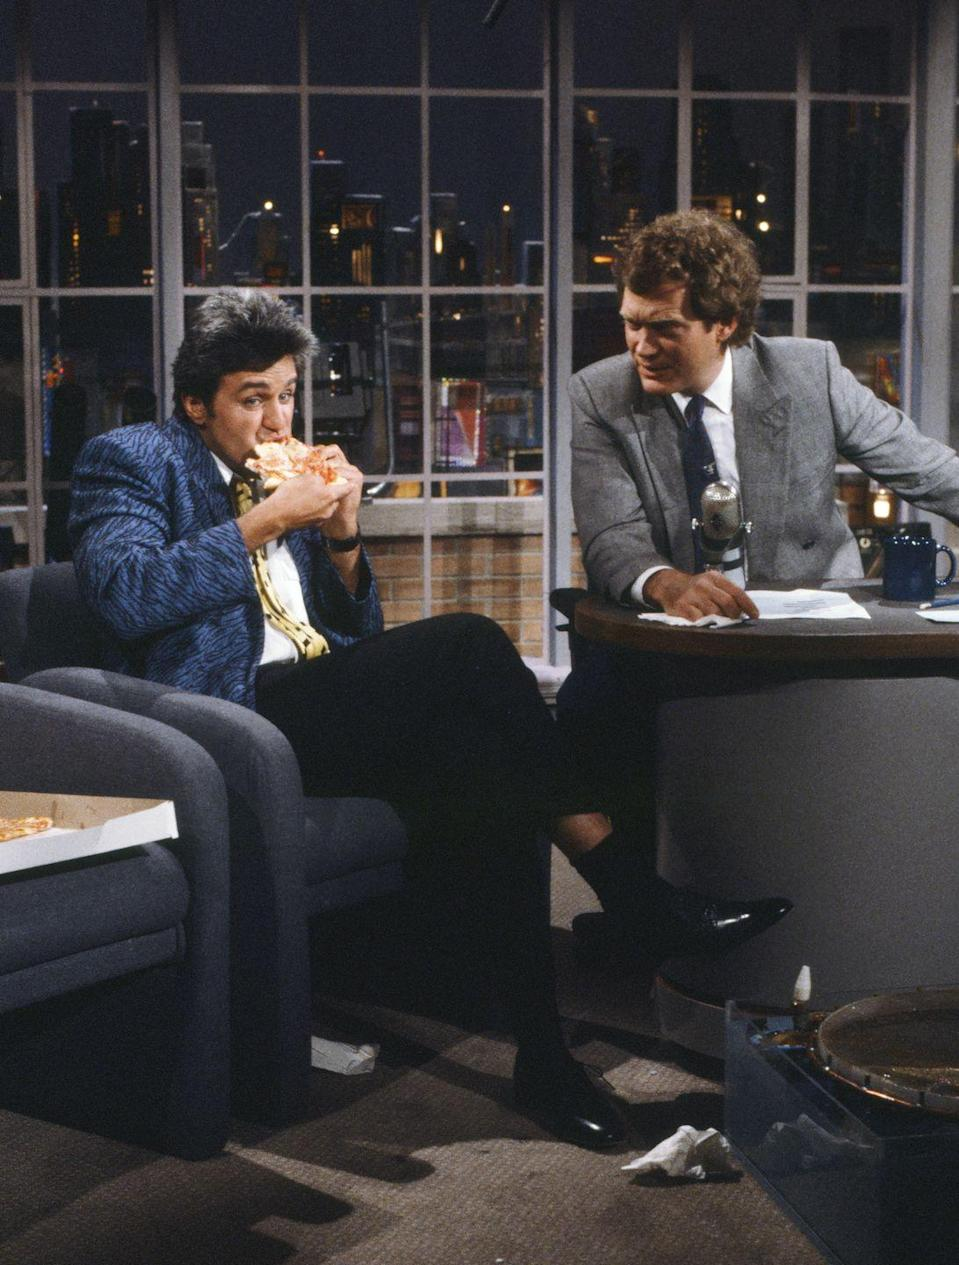 """<p>Thus began the long-standing rivalry known as the """"Late Night Wars,"""" as the two talk shows — and the two hosts — competed for ratings over the next two decades, before both retiring from their respective shows. Jay then <a href=""""https://www.hollywoodreporter.com/news/jay-leno-david-letterman-he-was-mean-me-it-was-funny-1049183"""" rel=""""nofollow noopener"""" target=""""_blank"""" data-ylk=""""slk:later said in 2017:"""" class=""""link rapid-noclick-resp"""">later said in 2017:</a> """"The idea that there was a huge rift between me and Dave — yeah, of course there was. And our shows were very competitive ... but it doesn't mean you don't respect each other.""""</p><p><strong>RELATED: </strong><a href=""""https://www.goodhousekeeping.com/life/entertainment/g33070837/short-lived-talk-shows/"""" rel=""""nofollow noopener"""" target=""""_blank"""" data-ylk=""""slk:20 Stars You Forgot Had Short-Lived Talk Shows"""" class=""""link rapid-noclick-resp"""">20 Stars You Forgot Had Short-Lived Talk Shows</a></p>"""